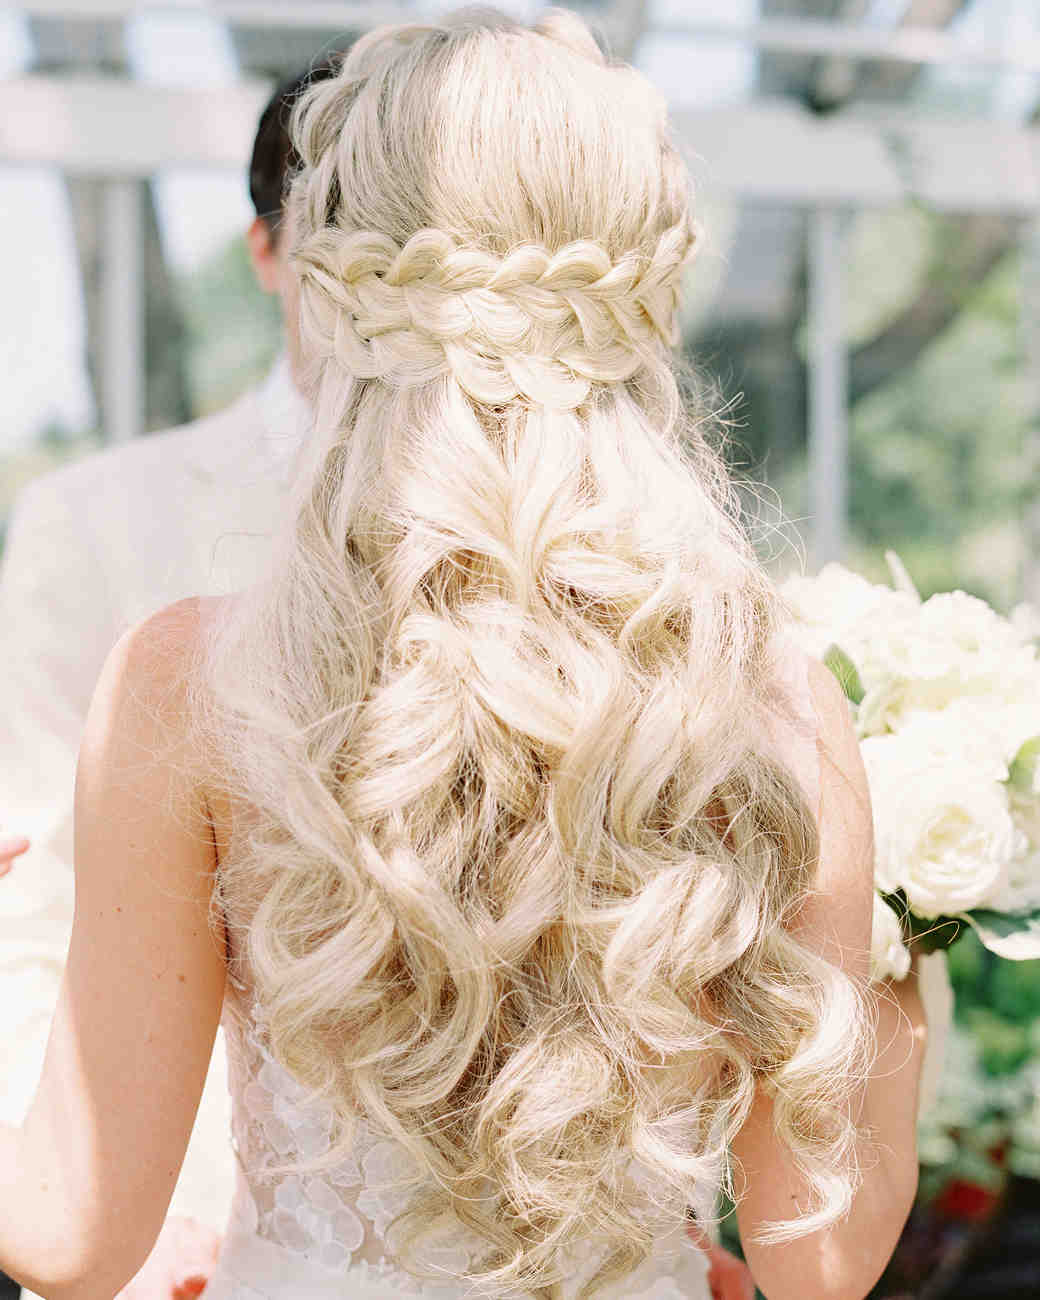 Braided Wedding Hair: 28 Half-Up, Half-Down Wedding Hairstyles We Love